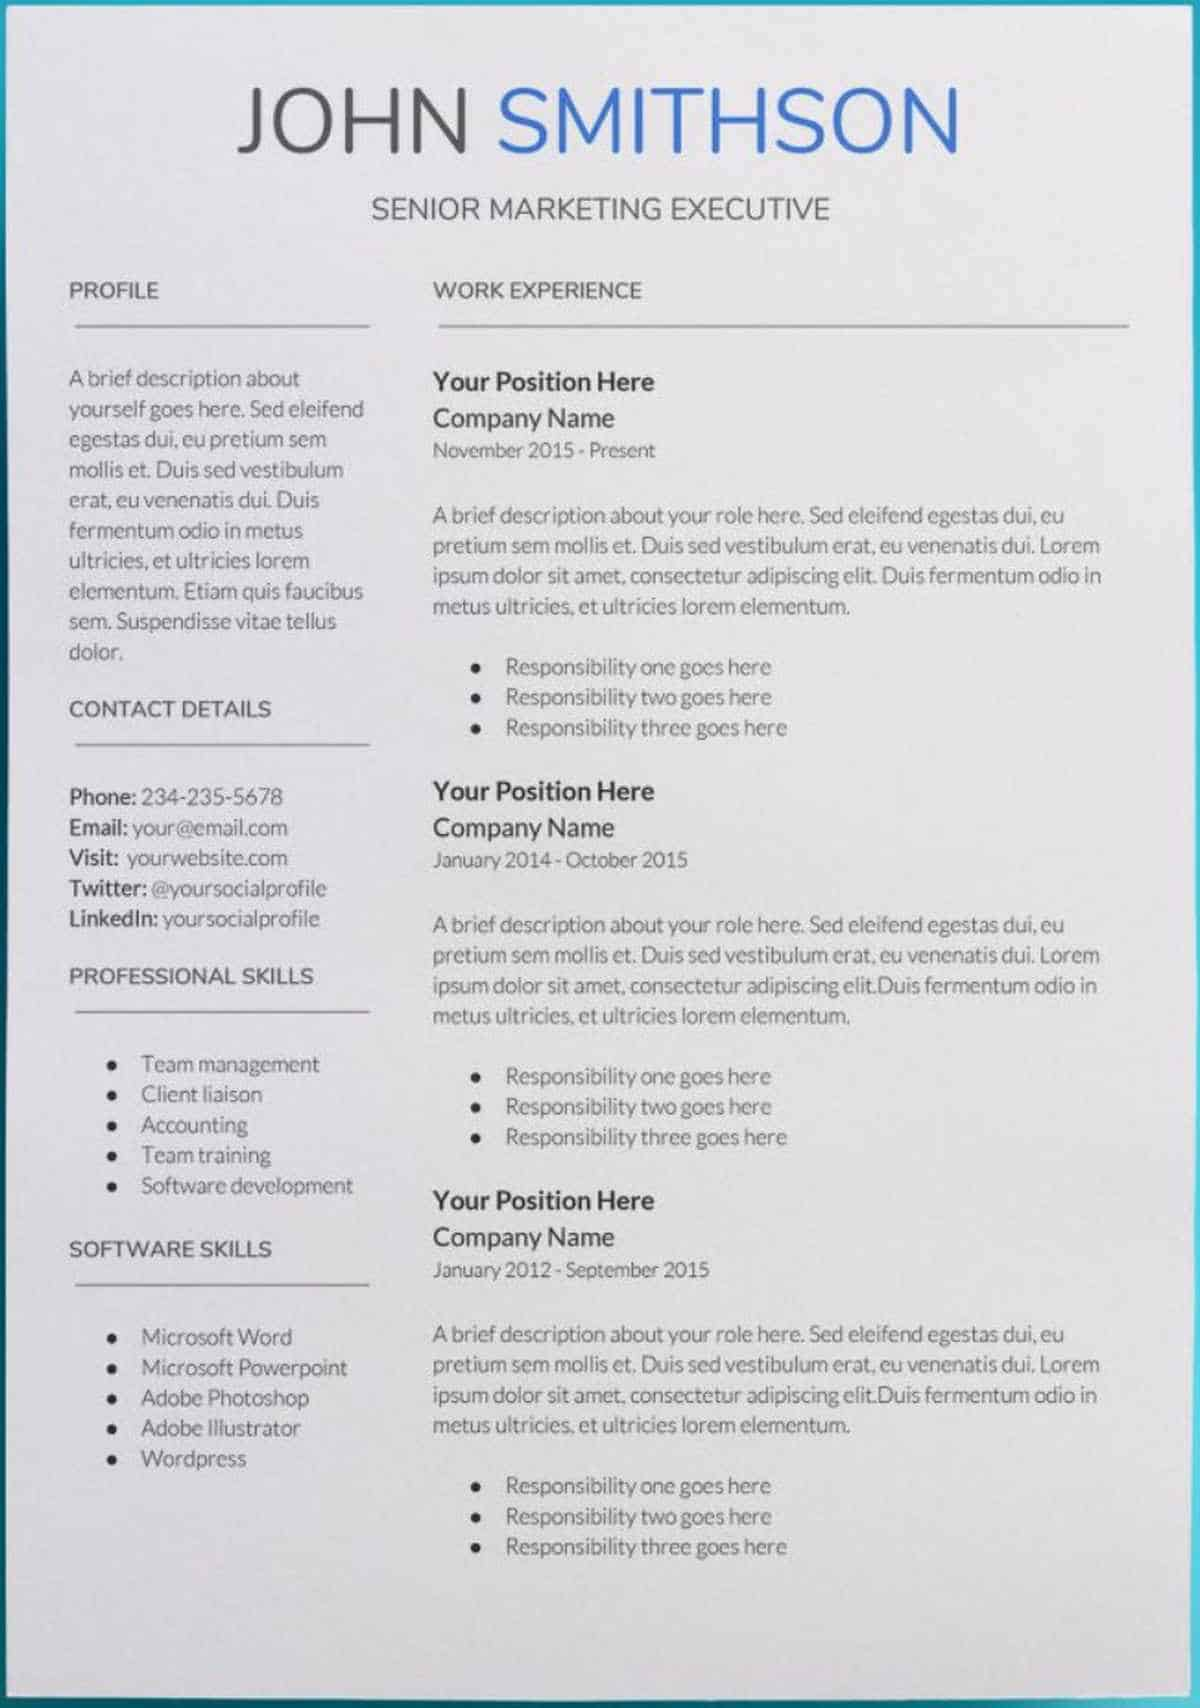 Template Of A Resume 30 Google Docs Resume Templates Downloadable Pdfs